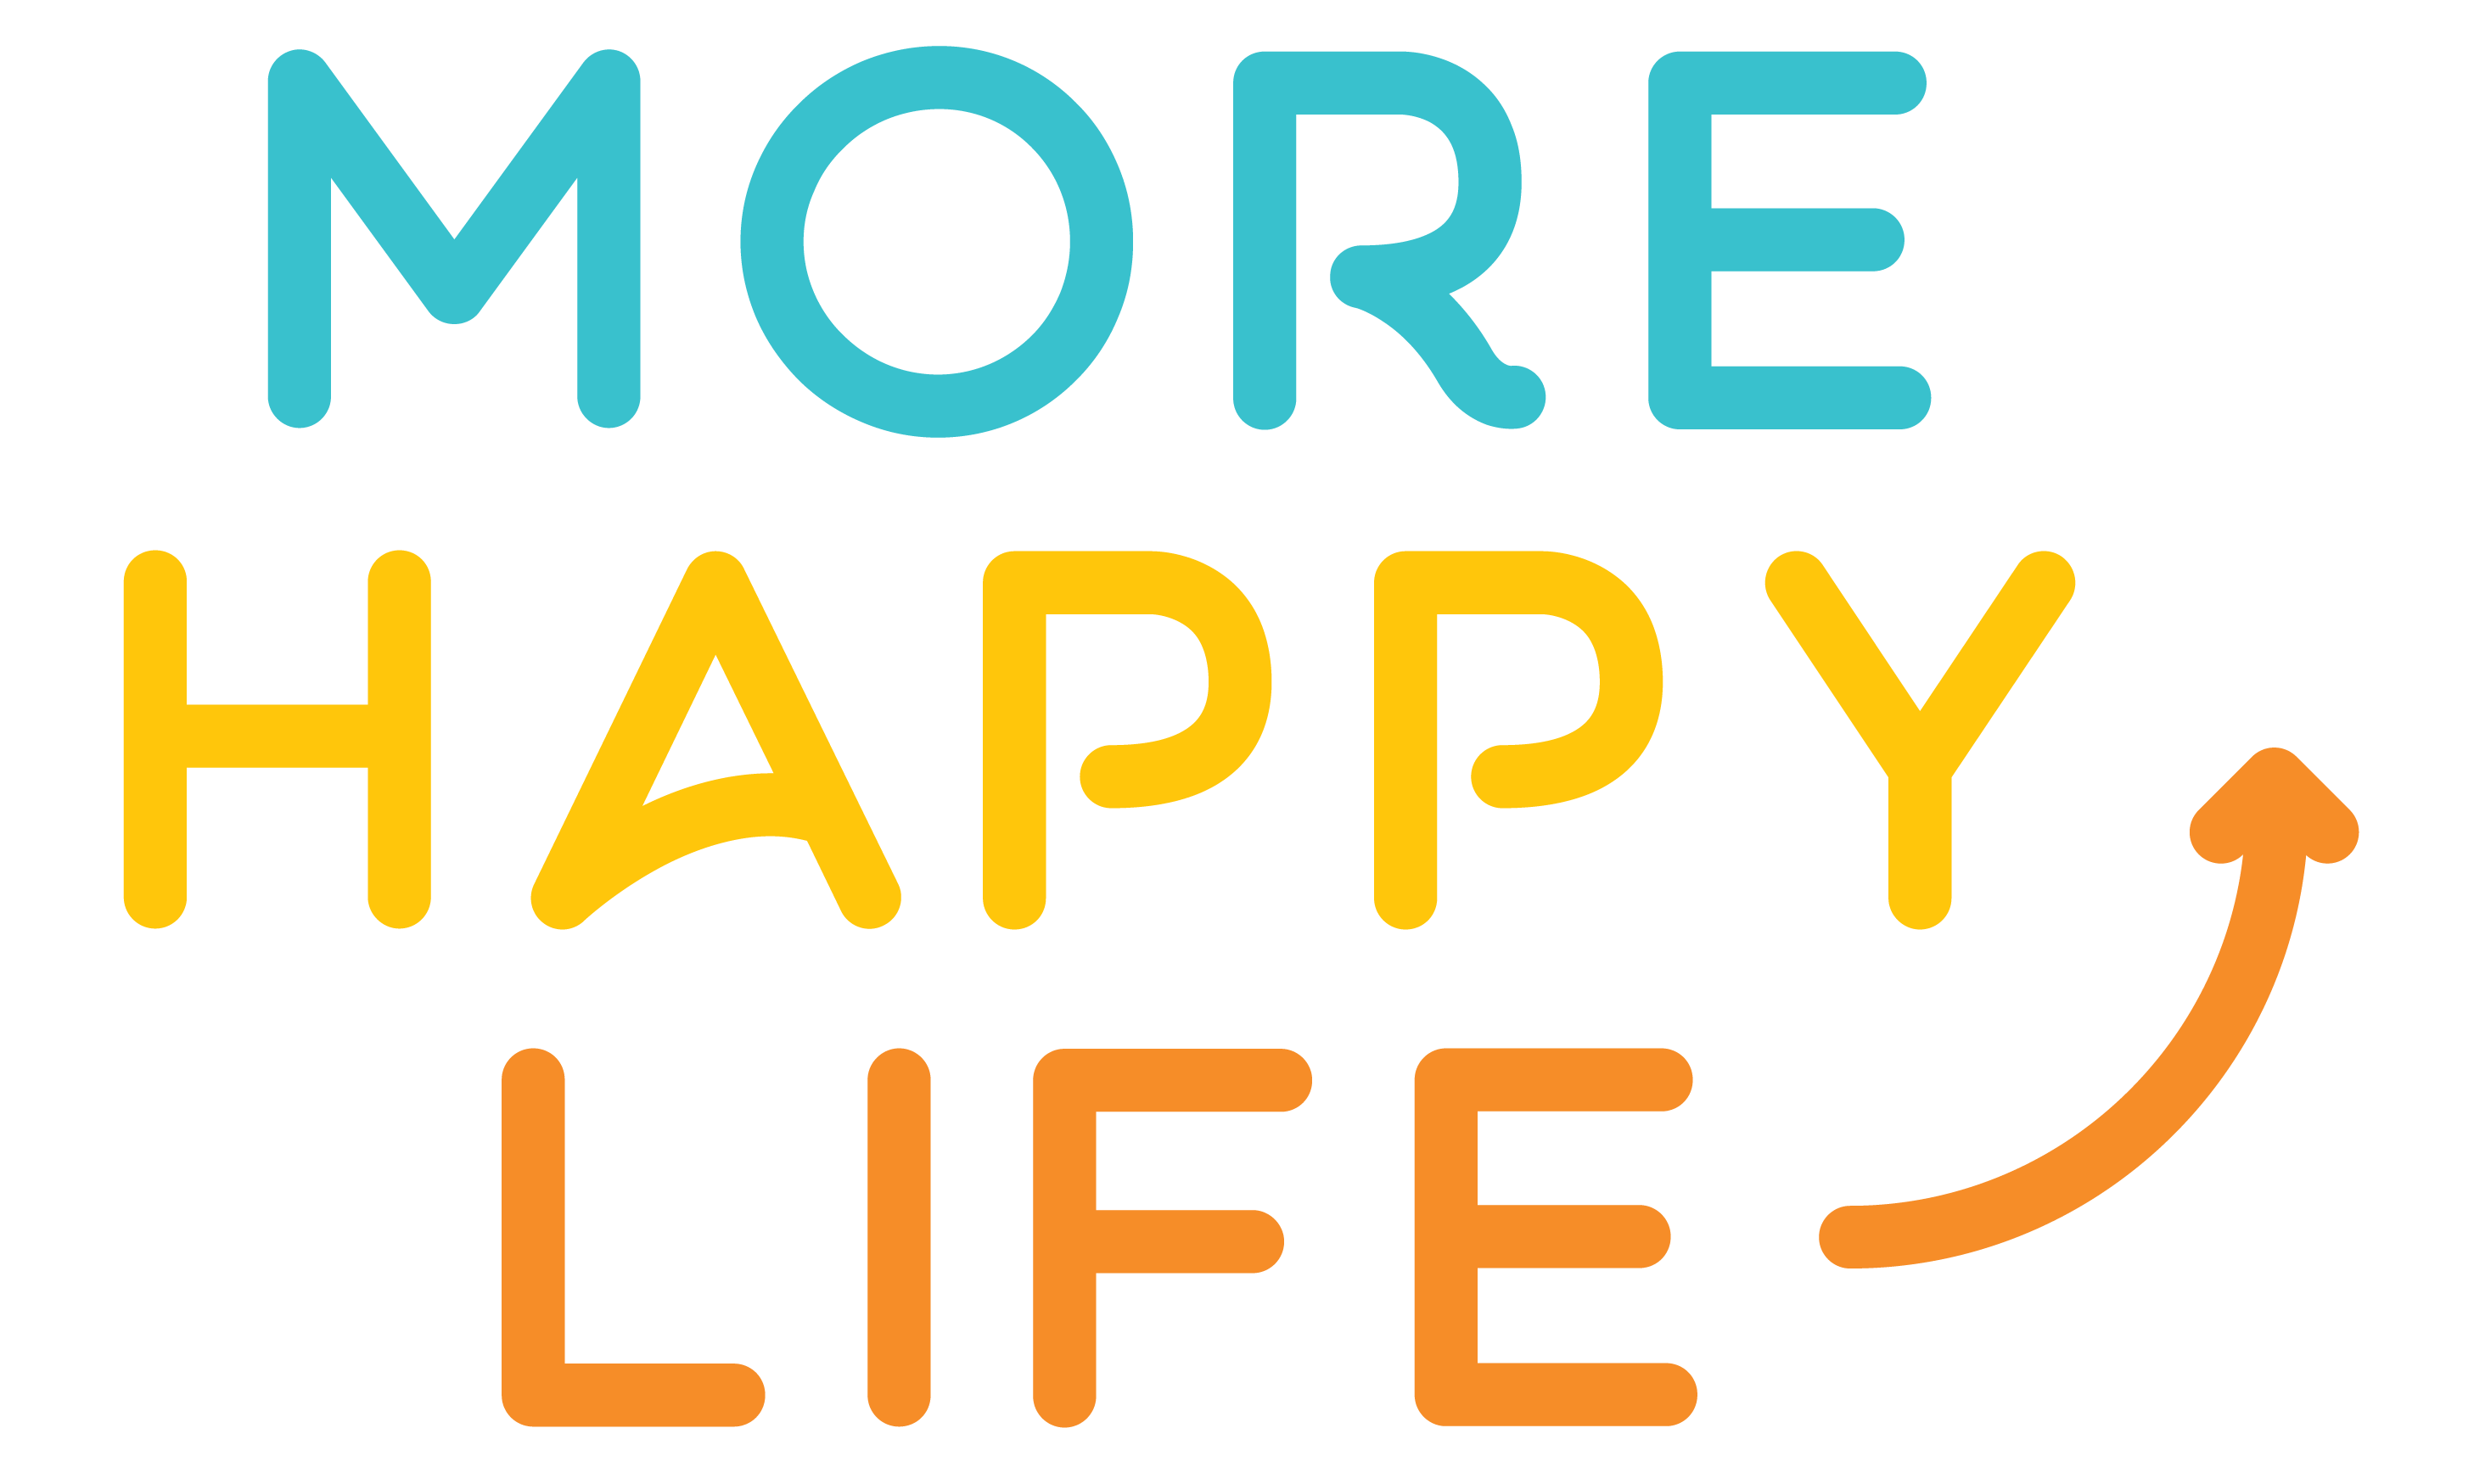 More Happy Life